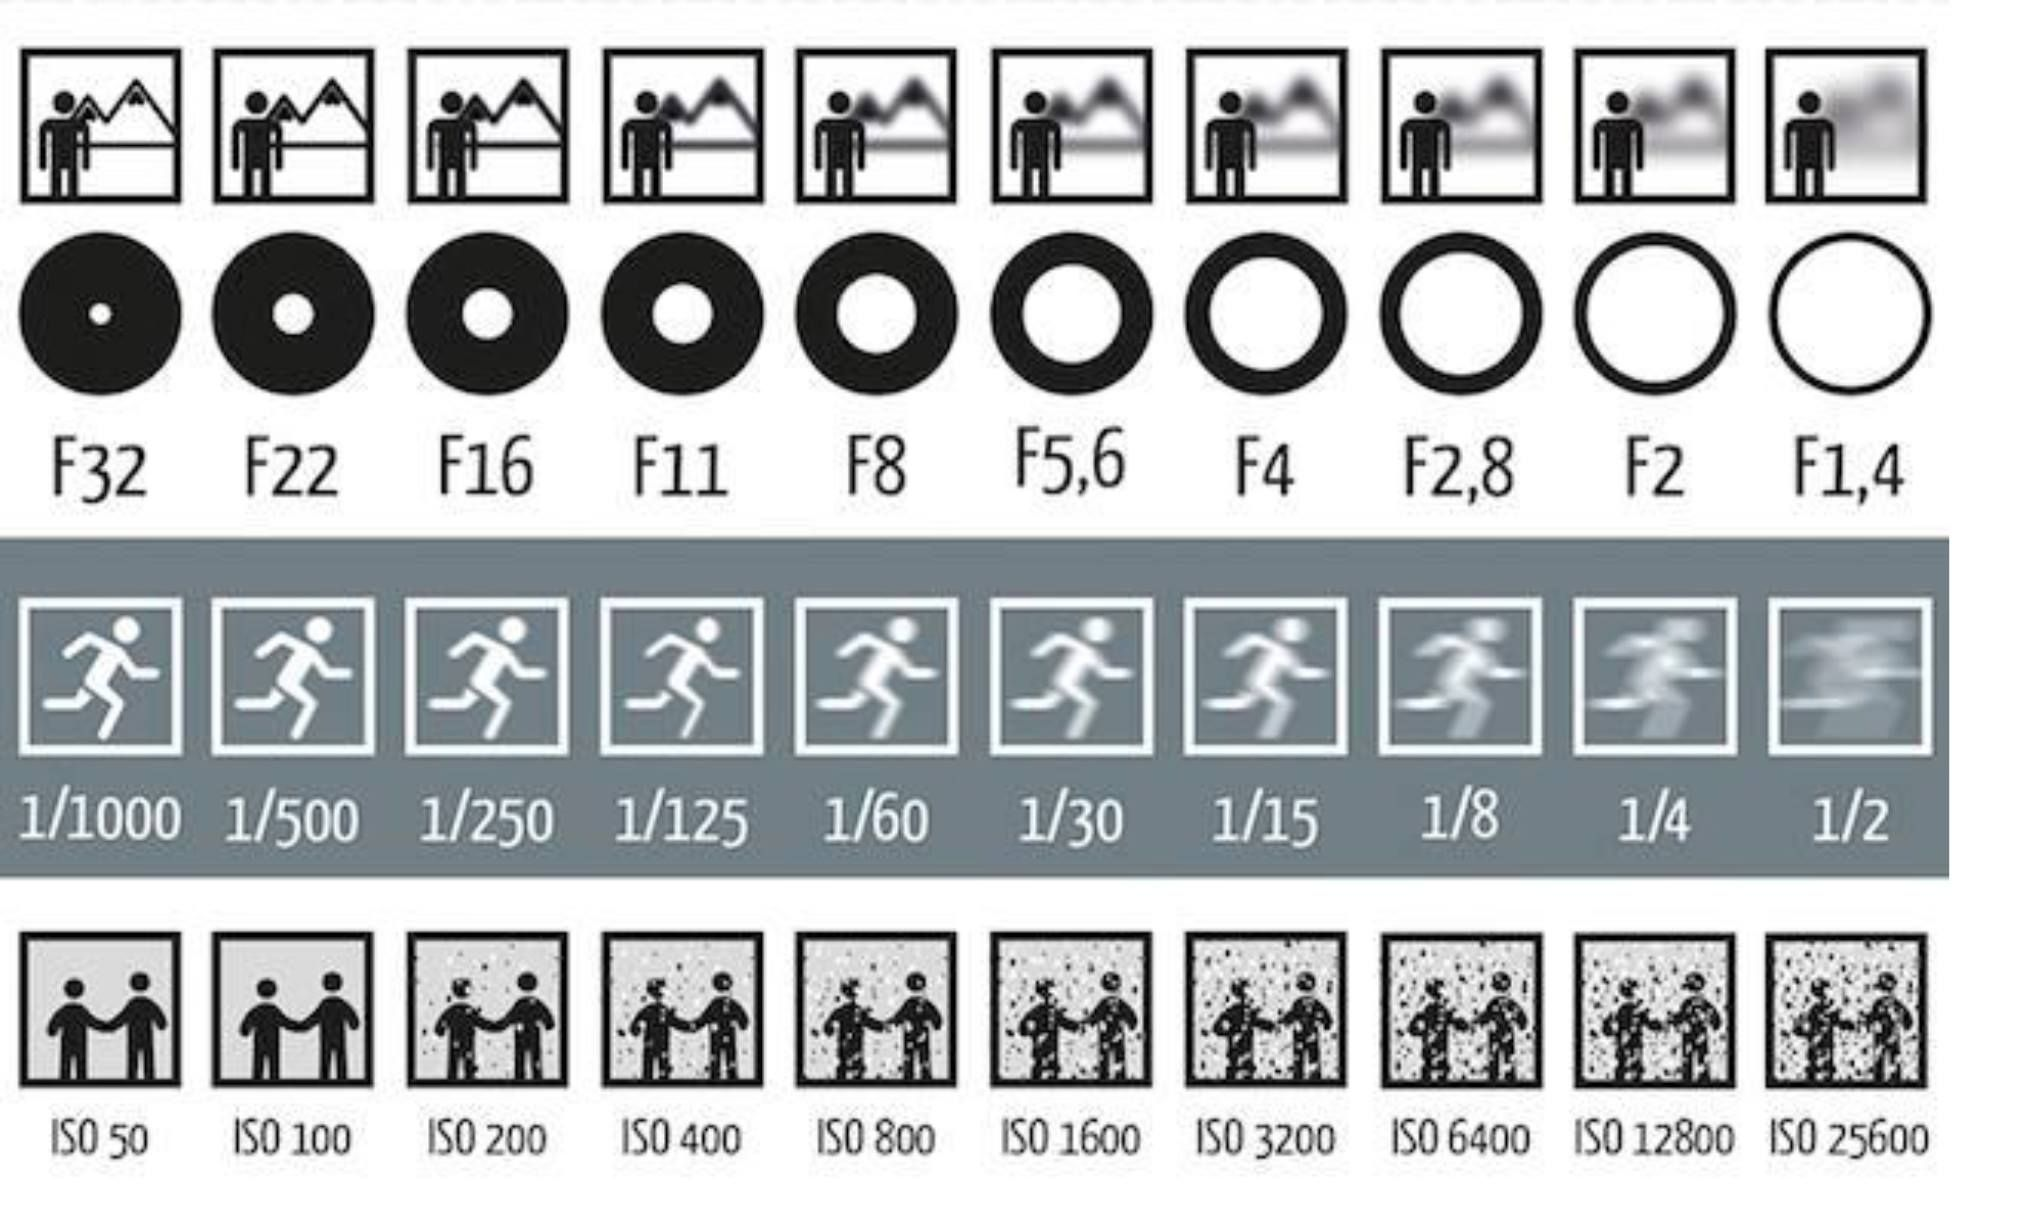 Cheatsheet | Photography instruction, Photography basics, Aperture and  shutter speed